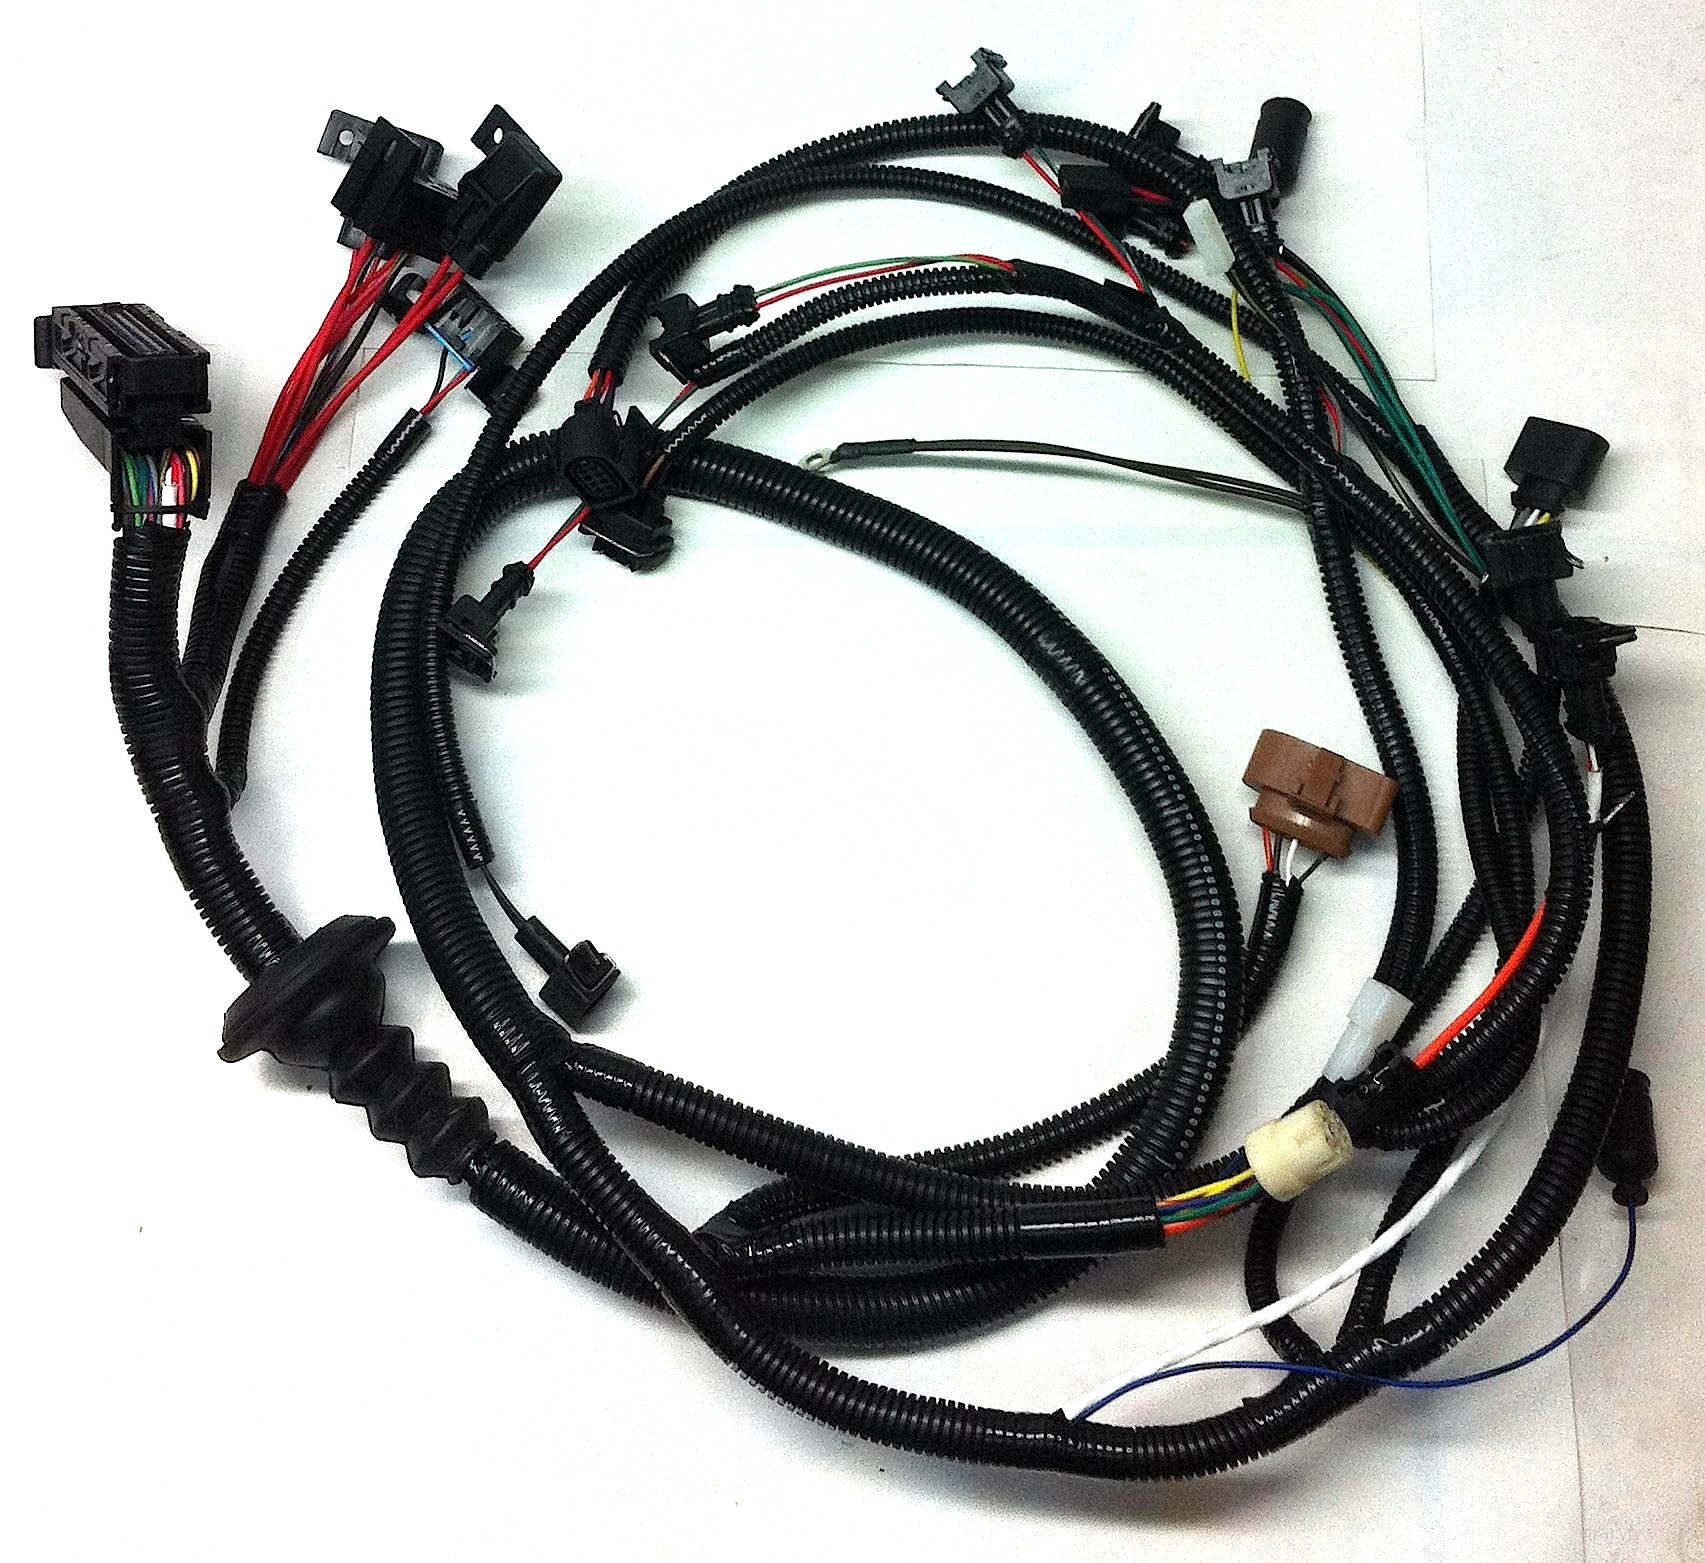 auto wiring harness electrical diagrams forum u2022 rh jimmellon co uk repairing auto wiring harness repairing auto wiring harness